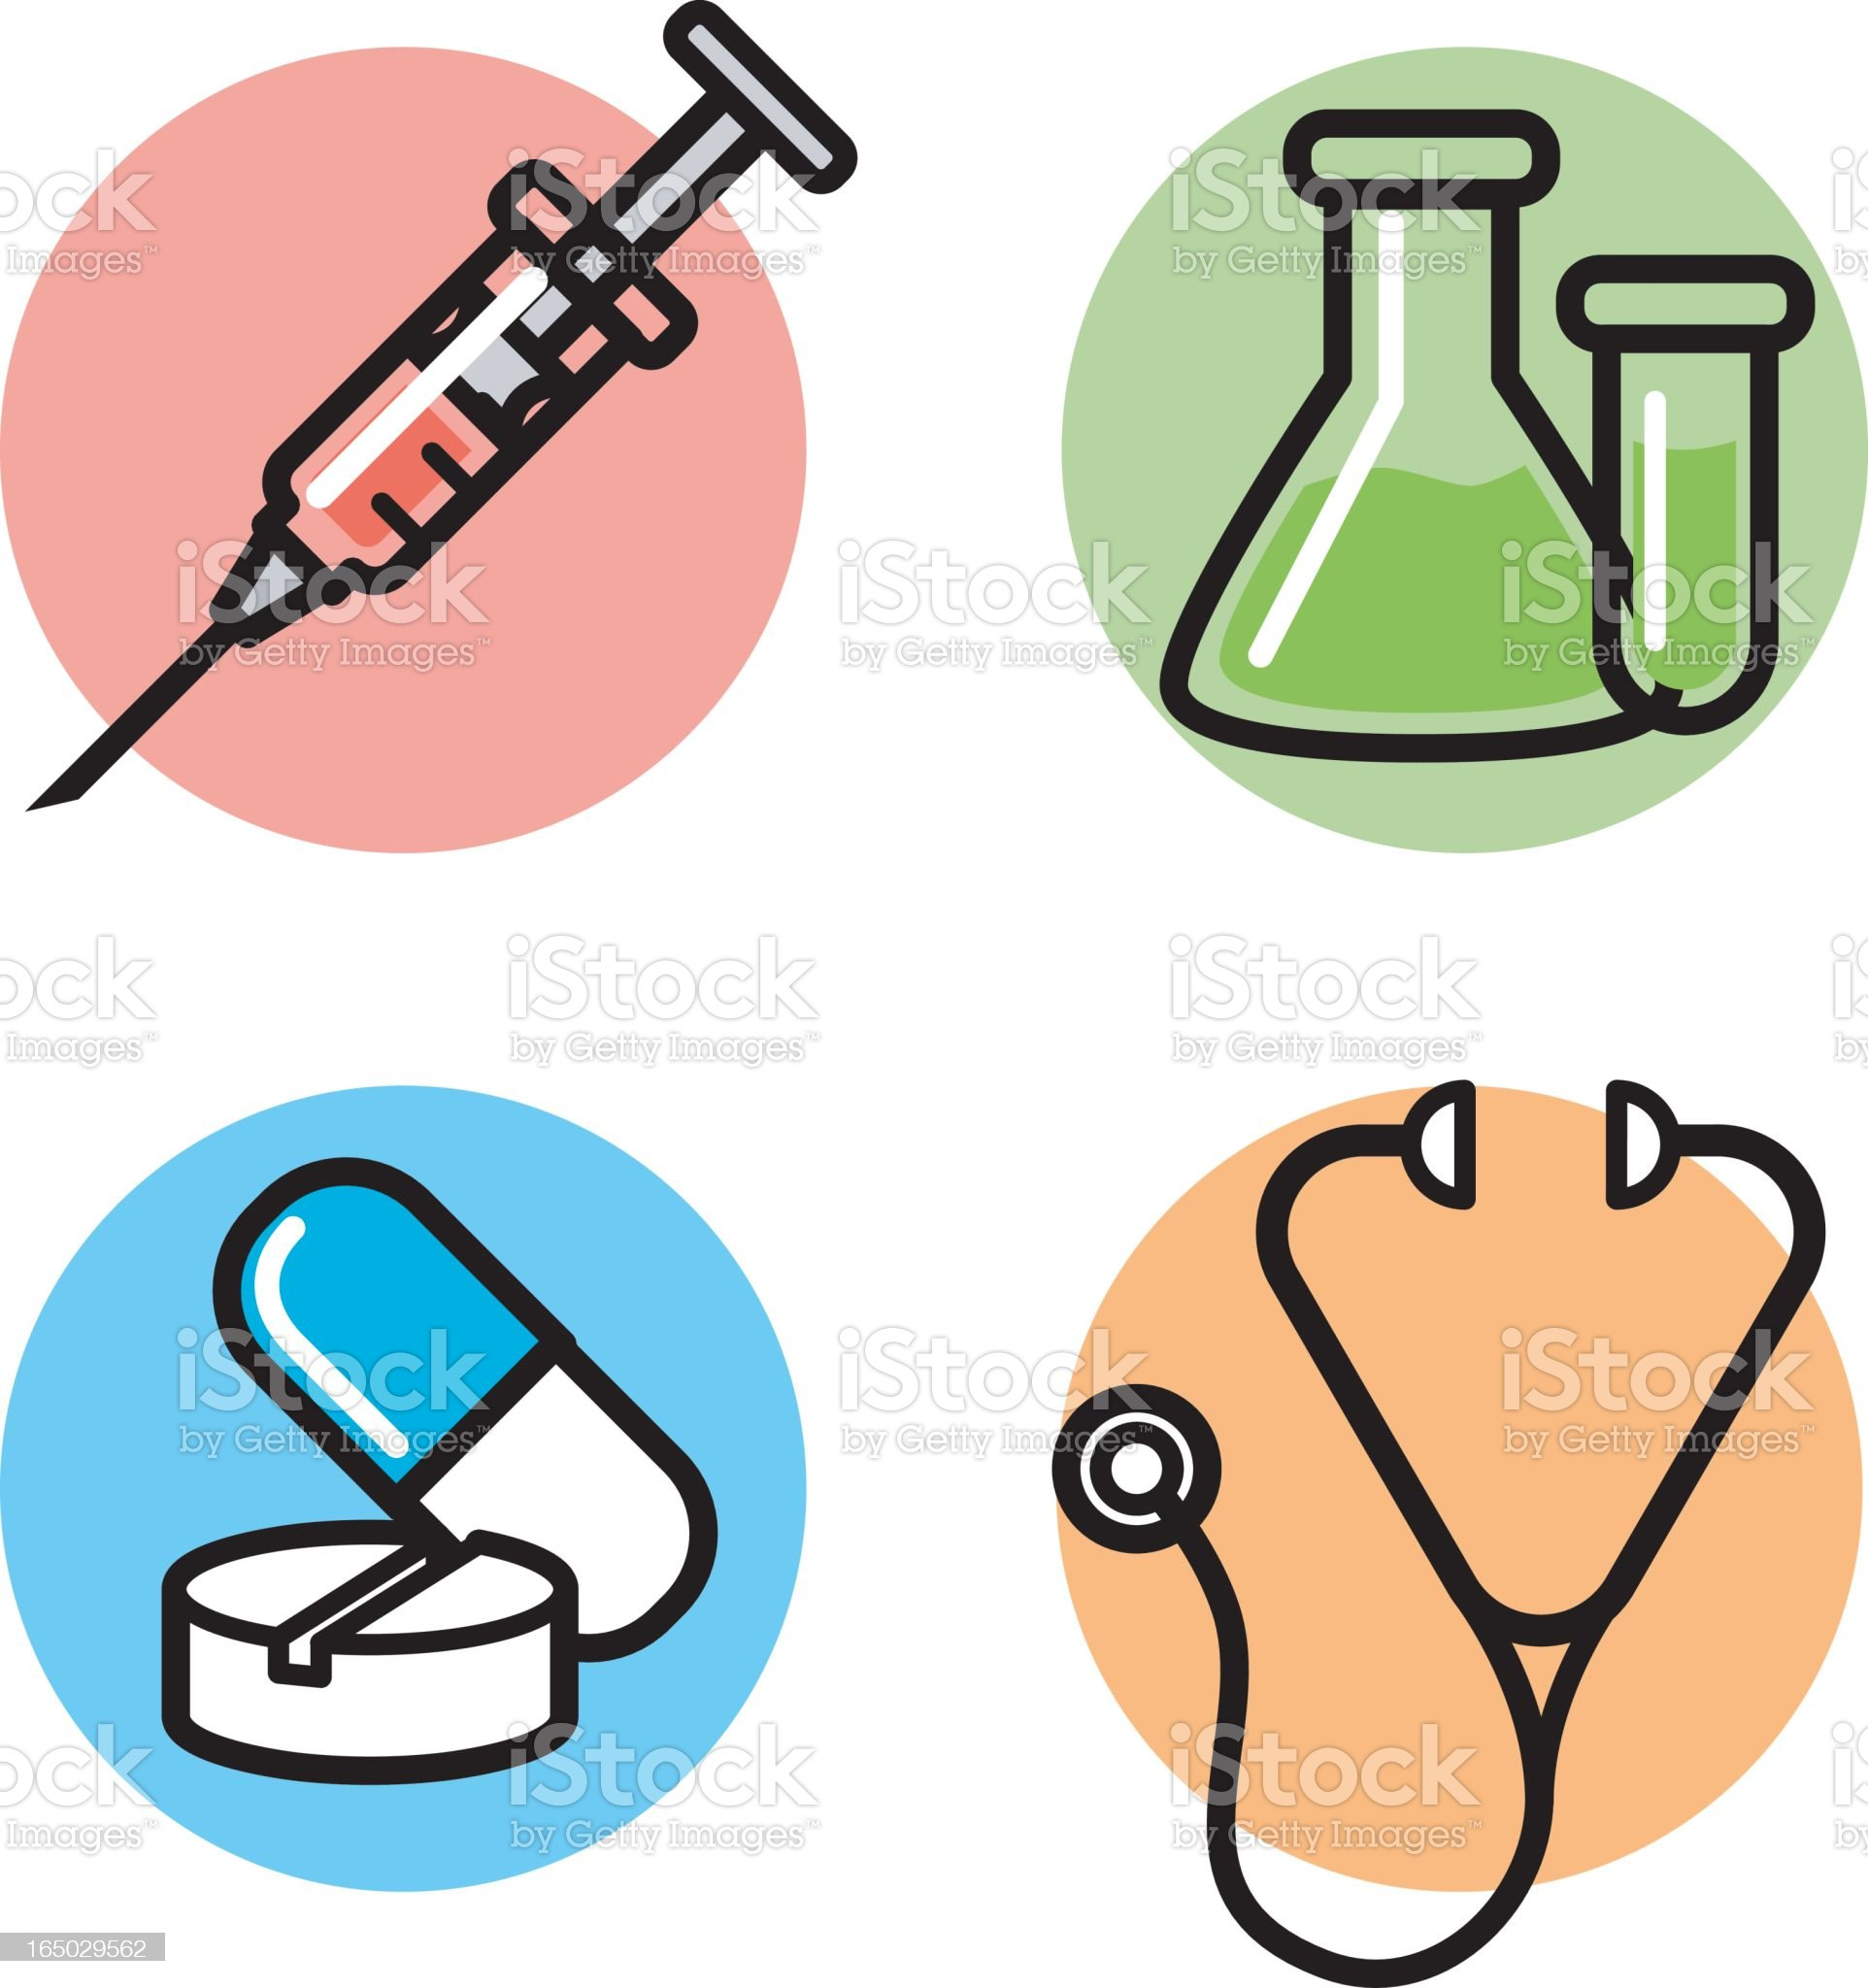 icons: medical royalty-free stock vector art